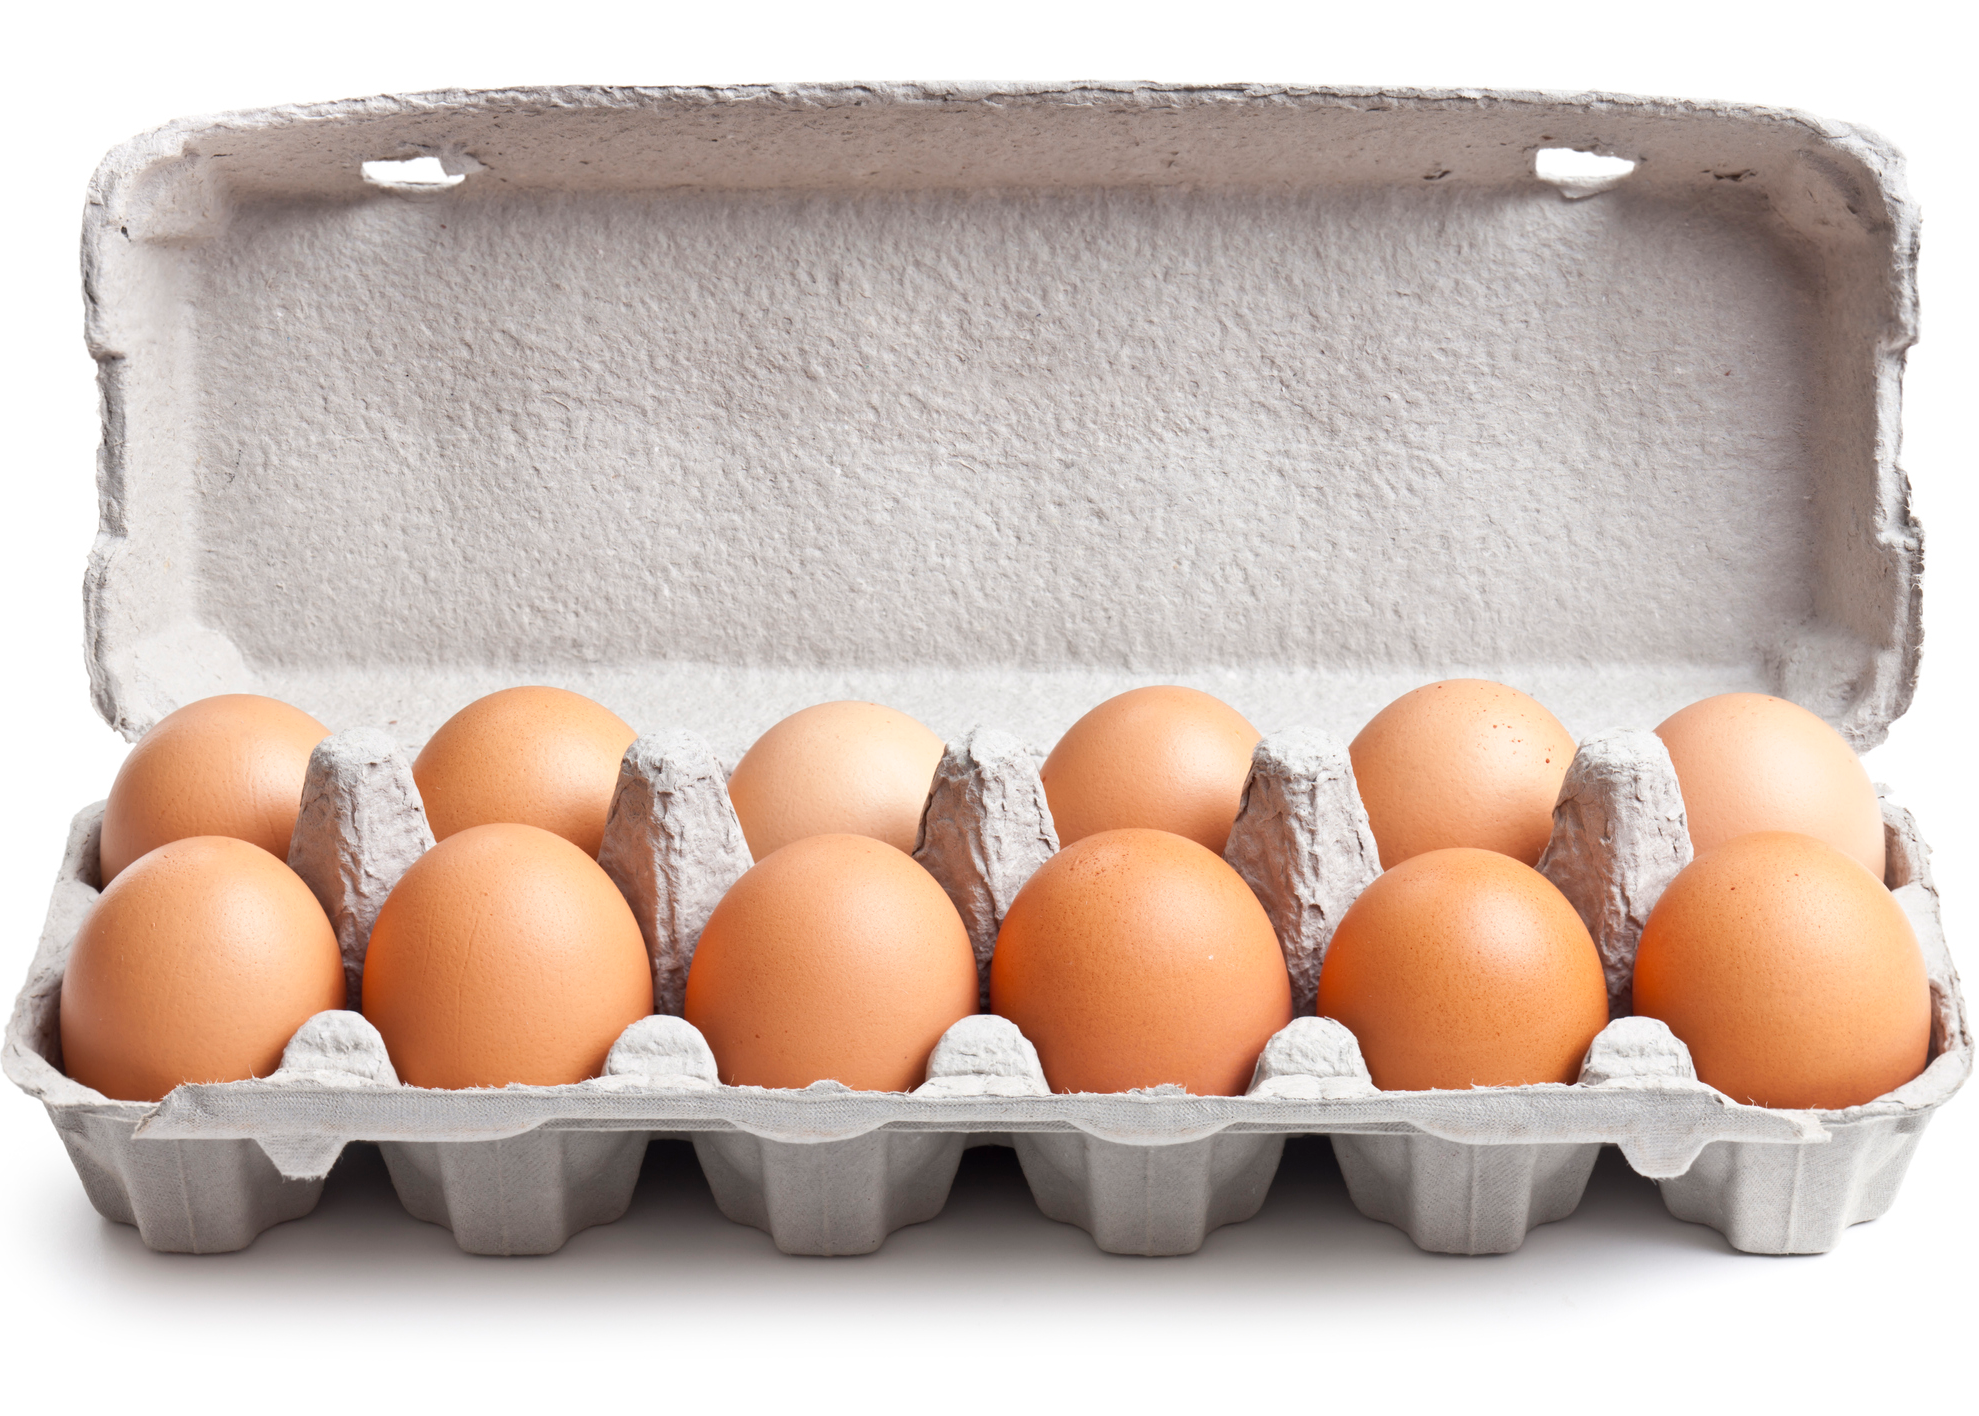 5 Things You Don't Know About Storing Eggs